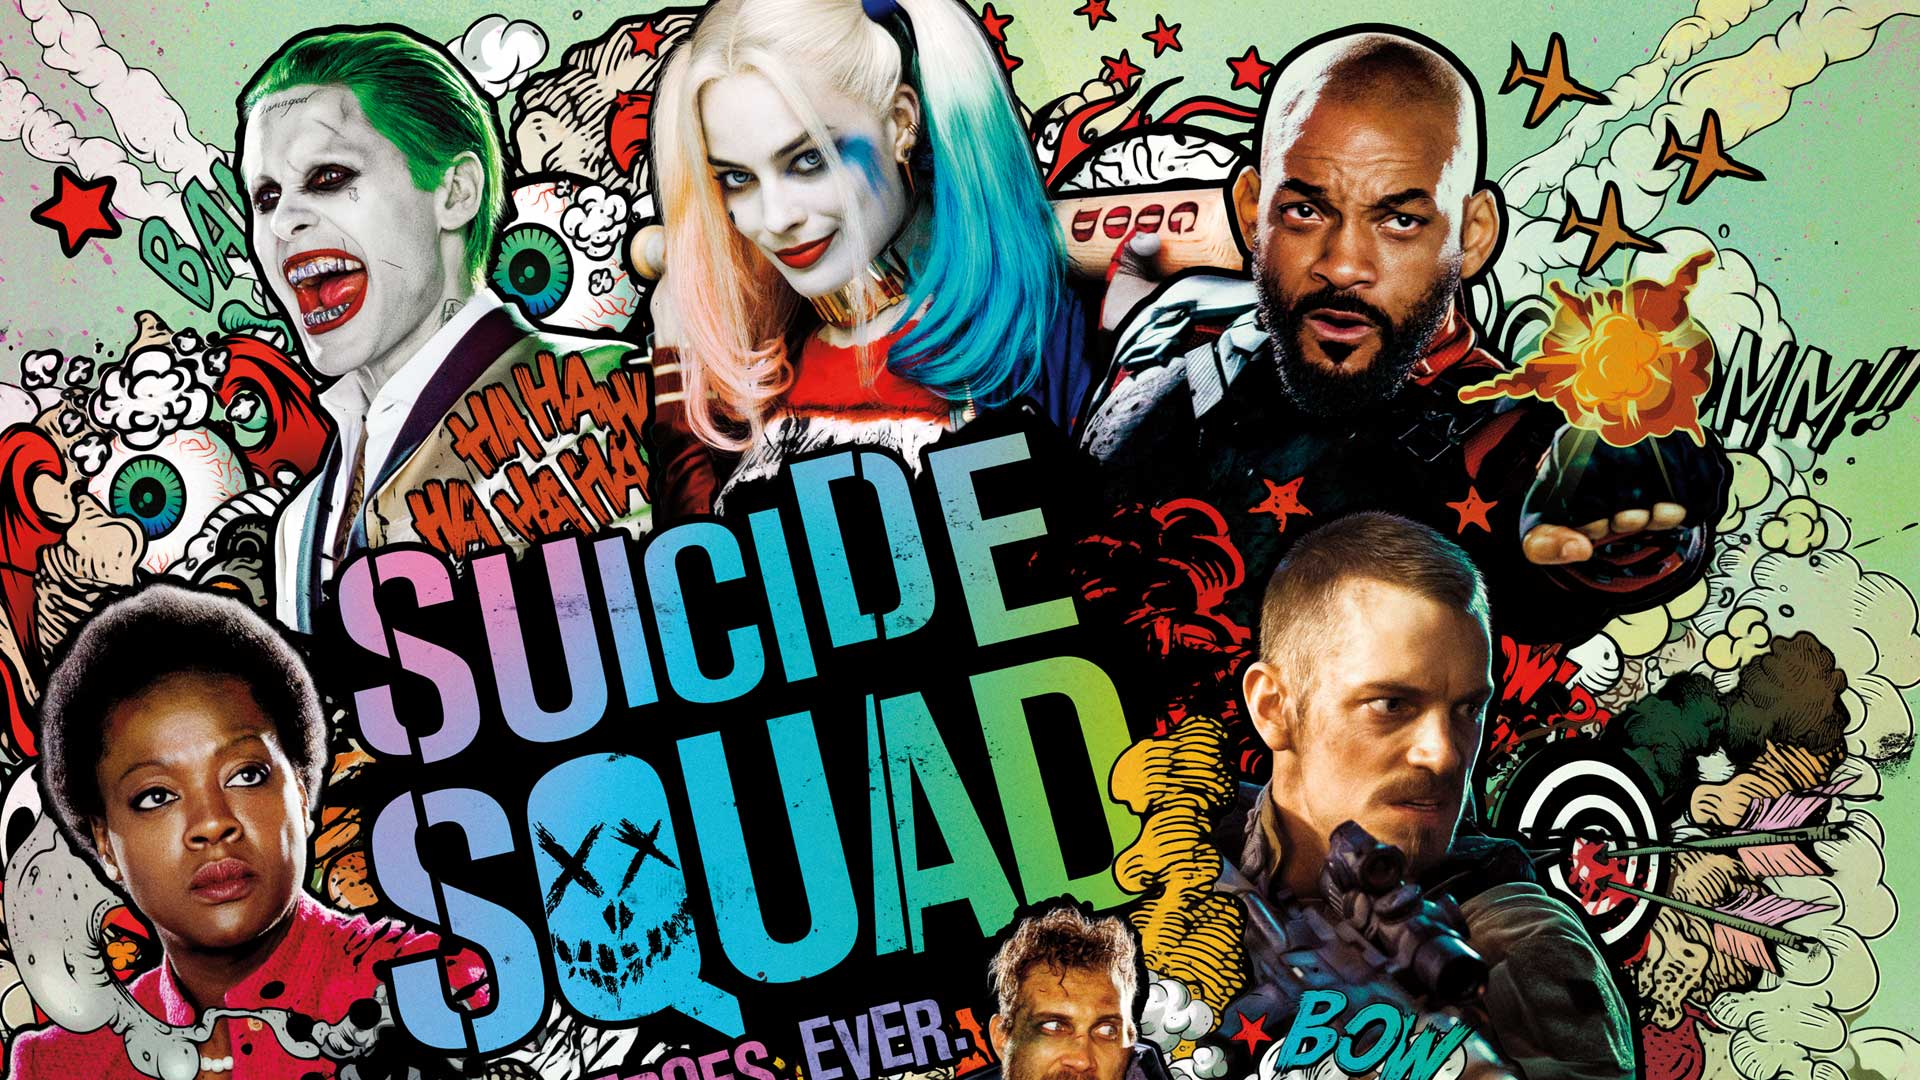 Casting Call for DC Comic's 'The Suicide Squad 2' in Atlanta